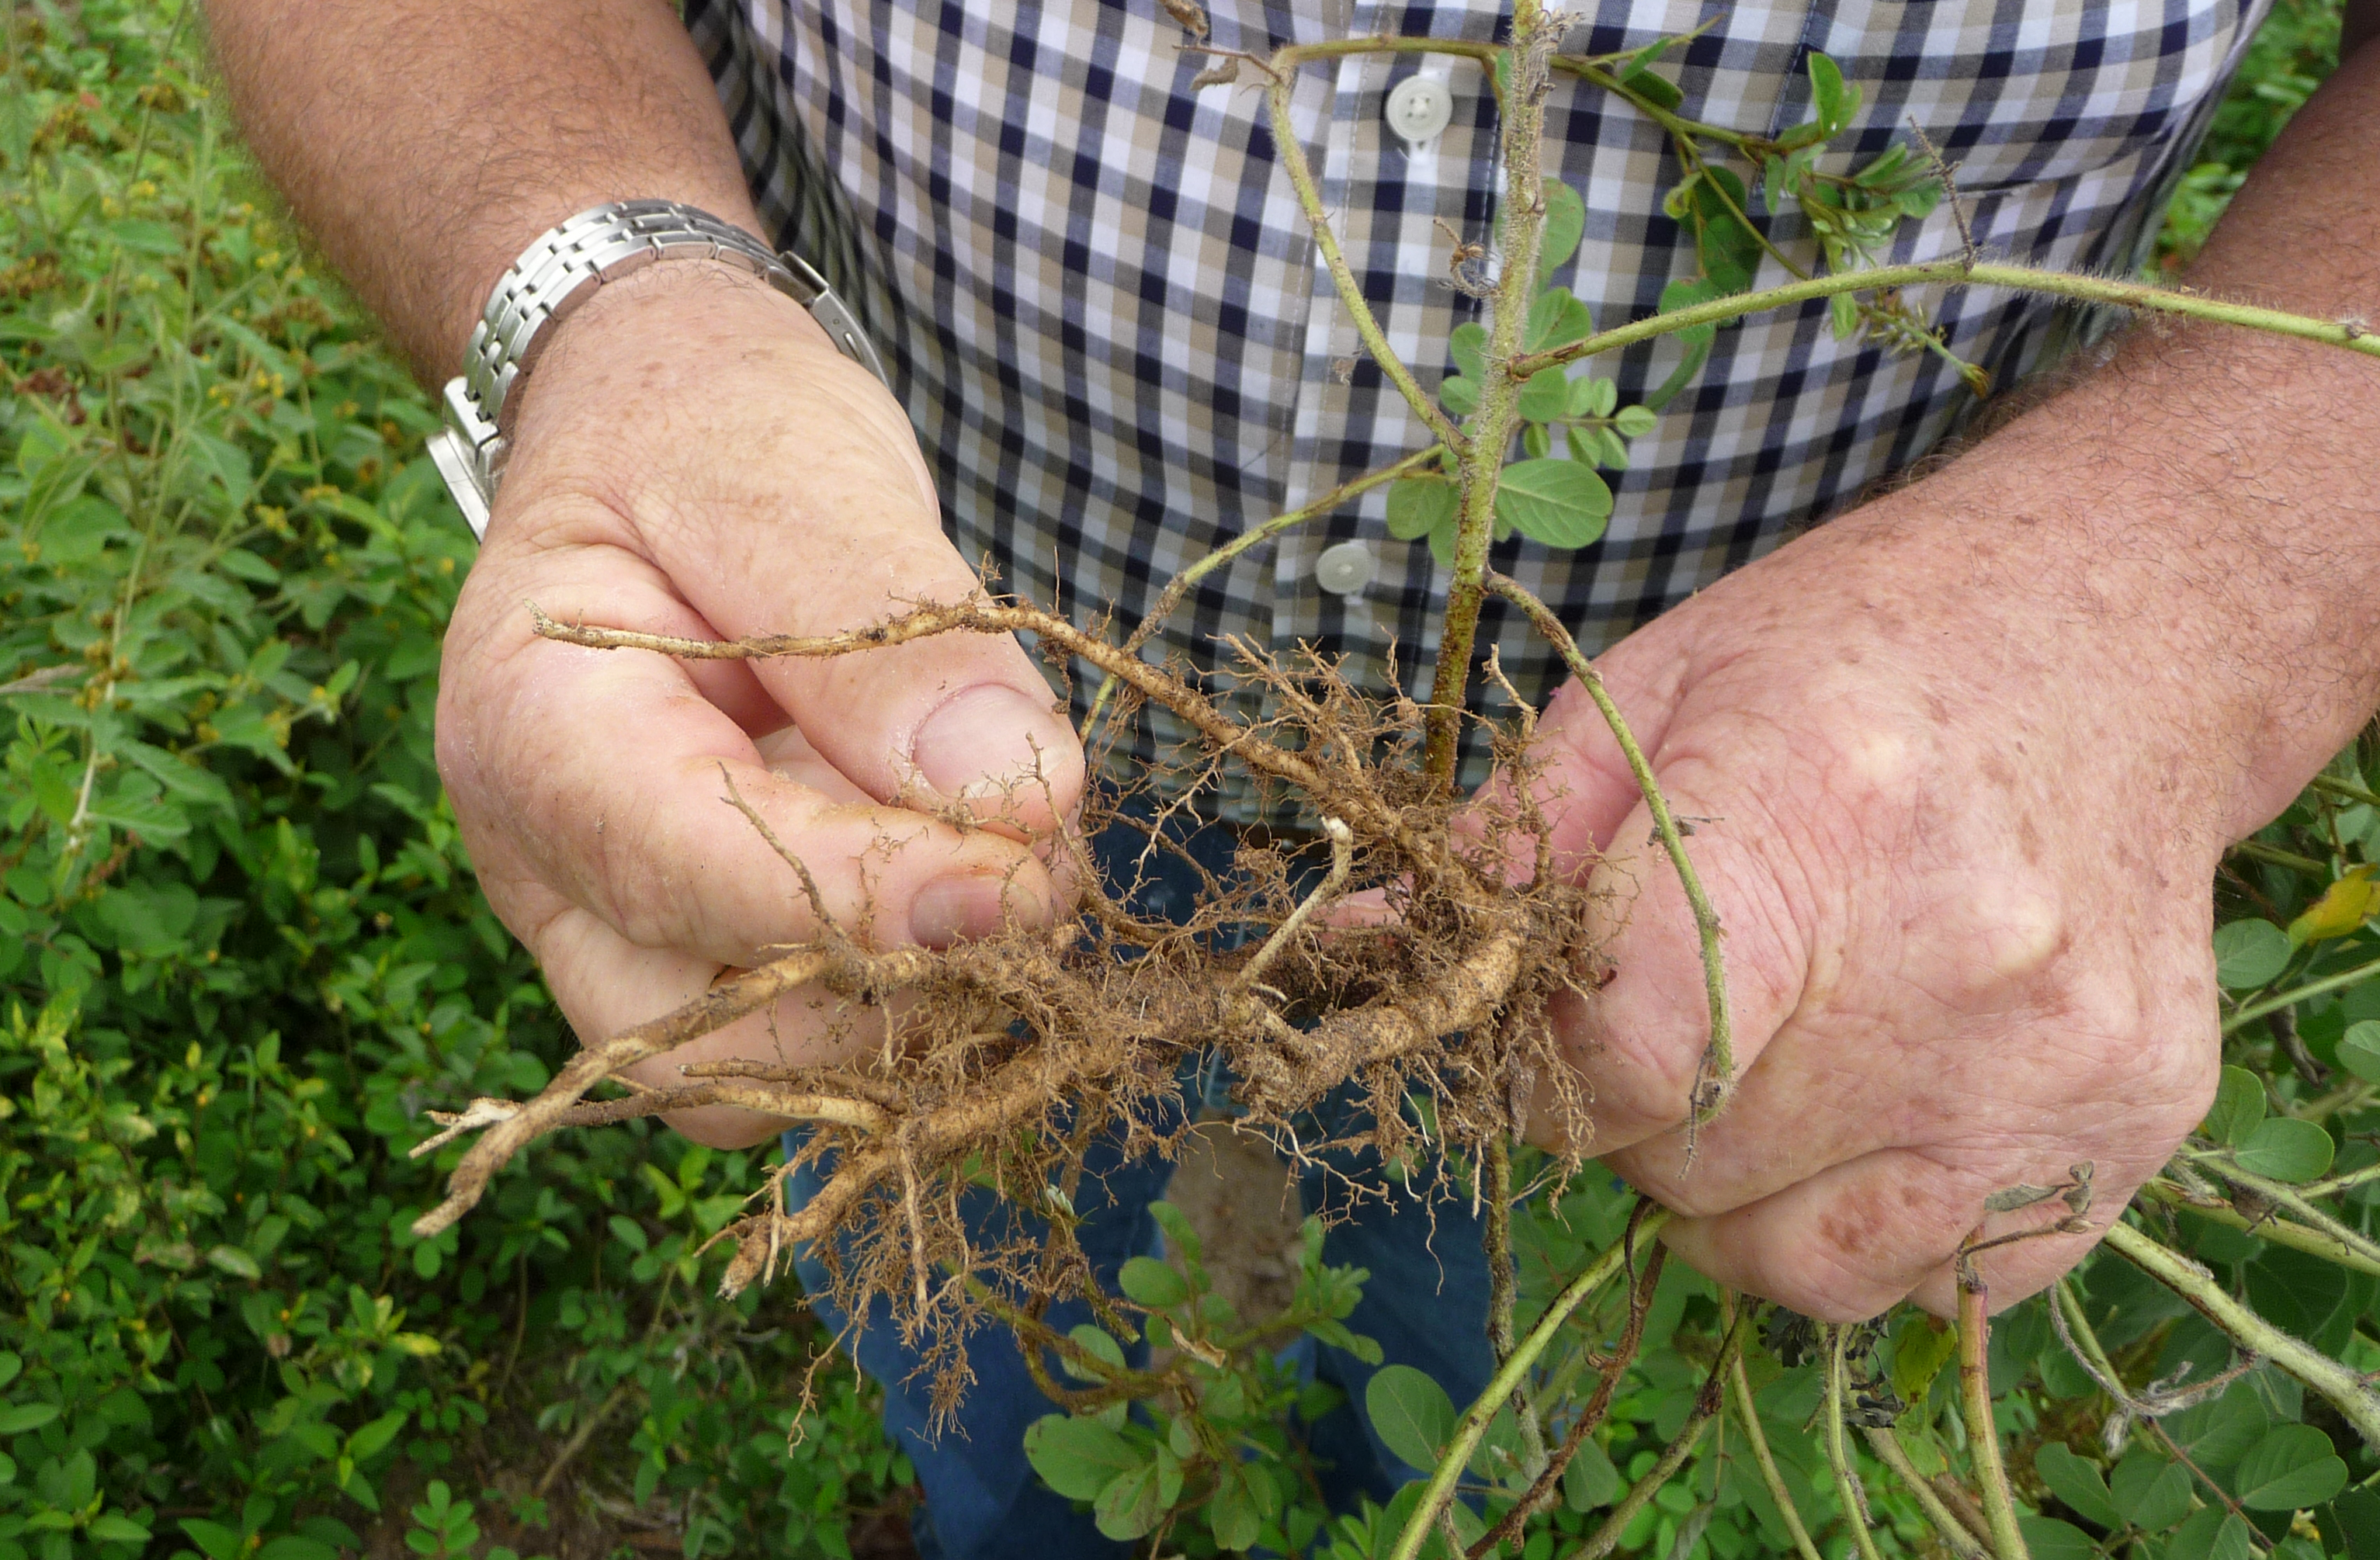 Miguel Brigard shows nodules oft leguminous roots which lead to nitrogen enrichment of the soil, Espinal, Colombia 2014